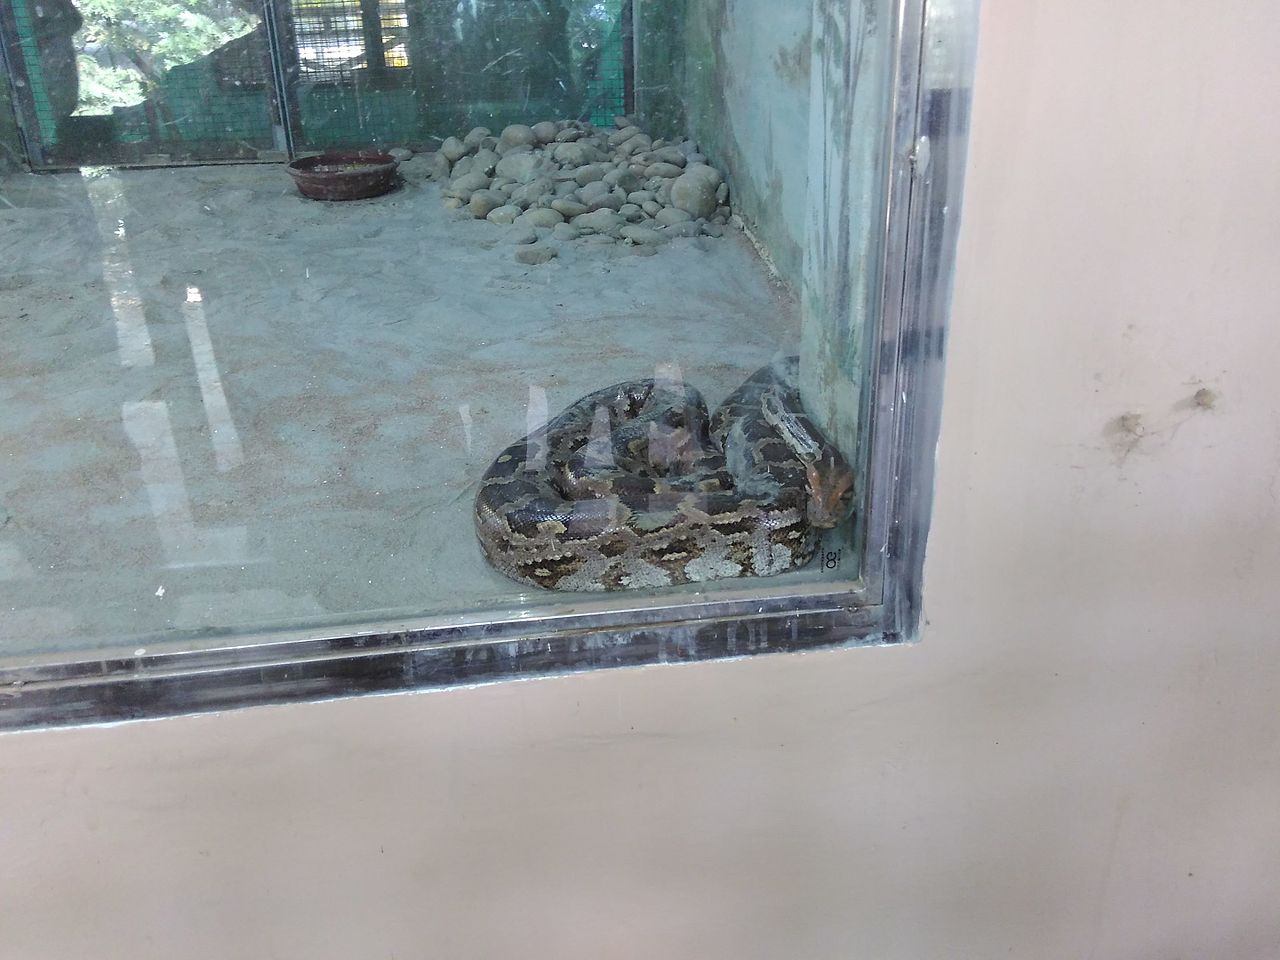 File:India Python jpg - Wikimedia Commons